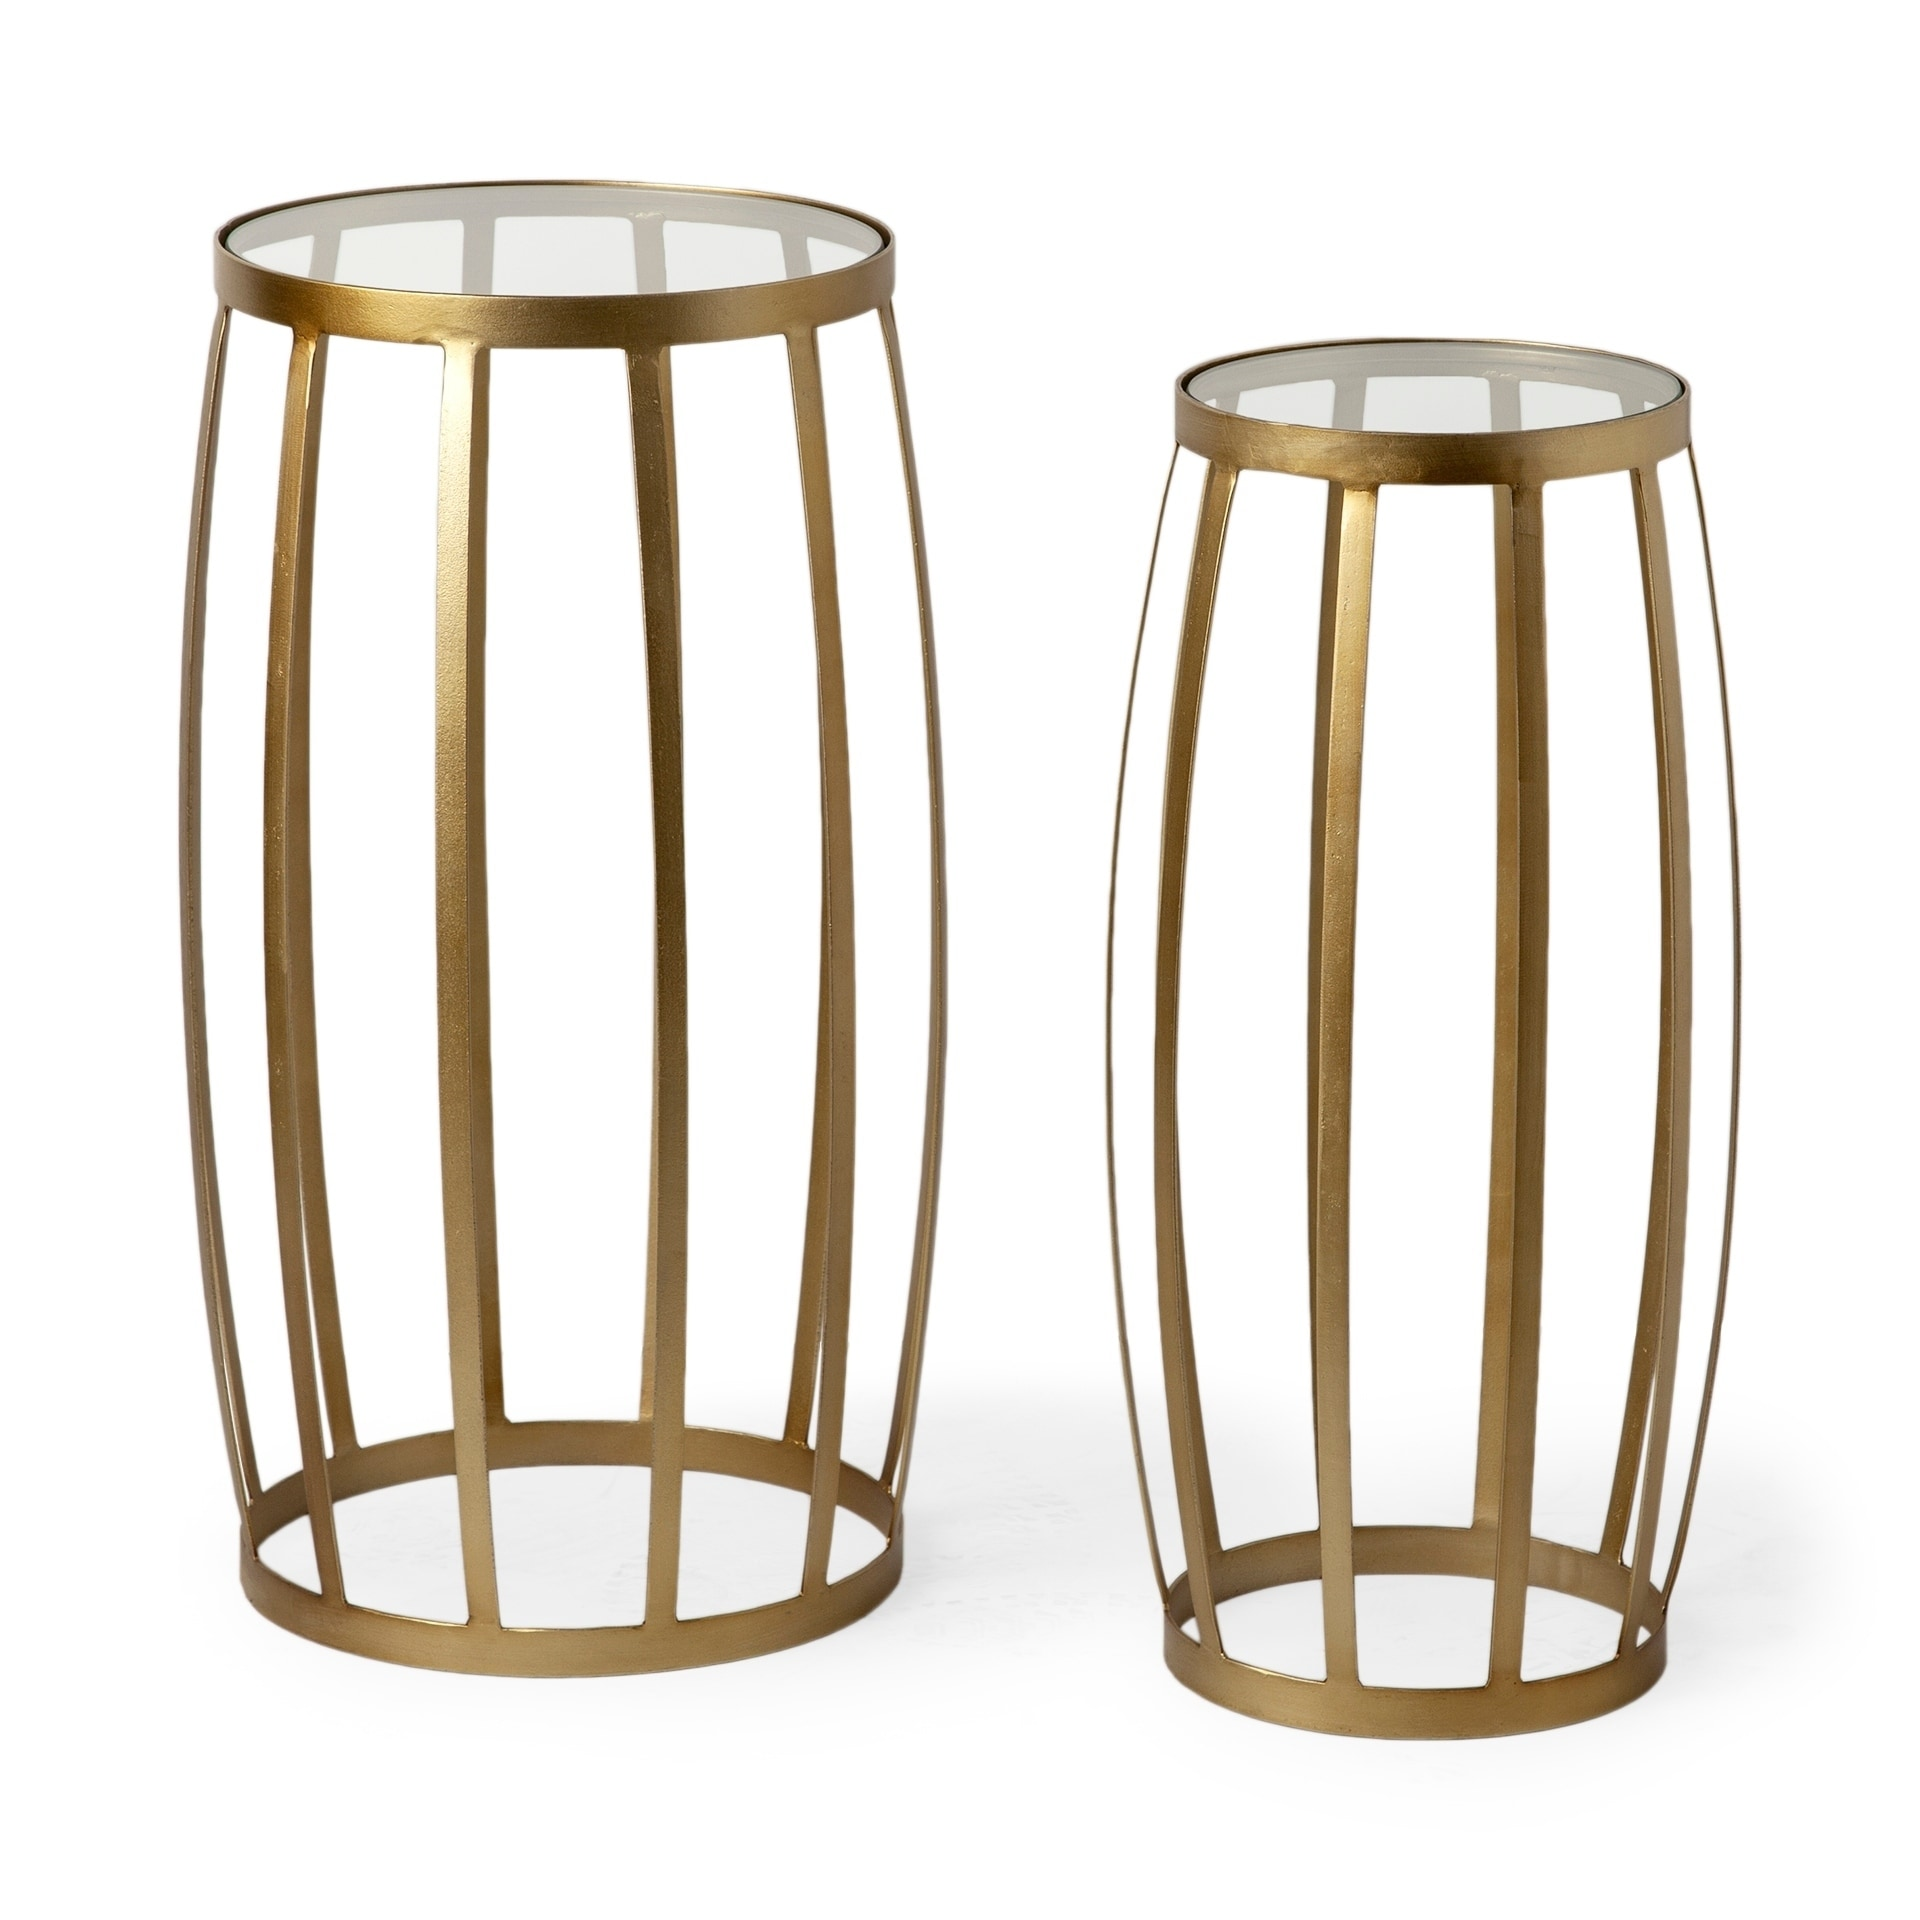 Shop mercana silhouette gold finish iron and glass accent tables set of 2 free shipping today overstock com 25628314